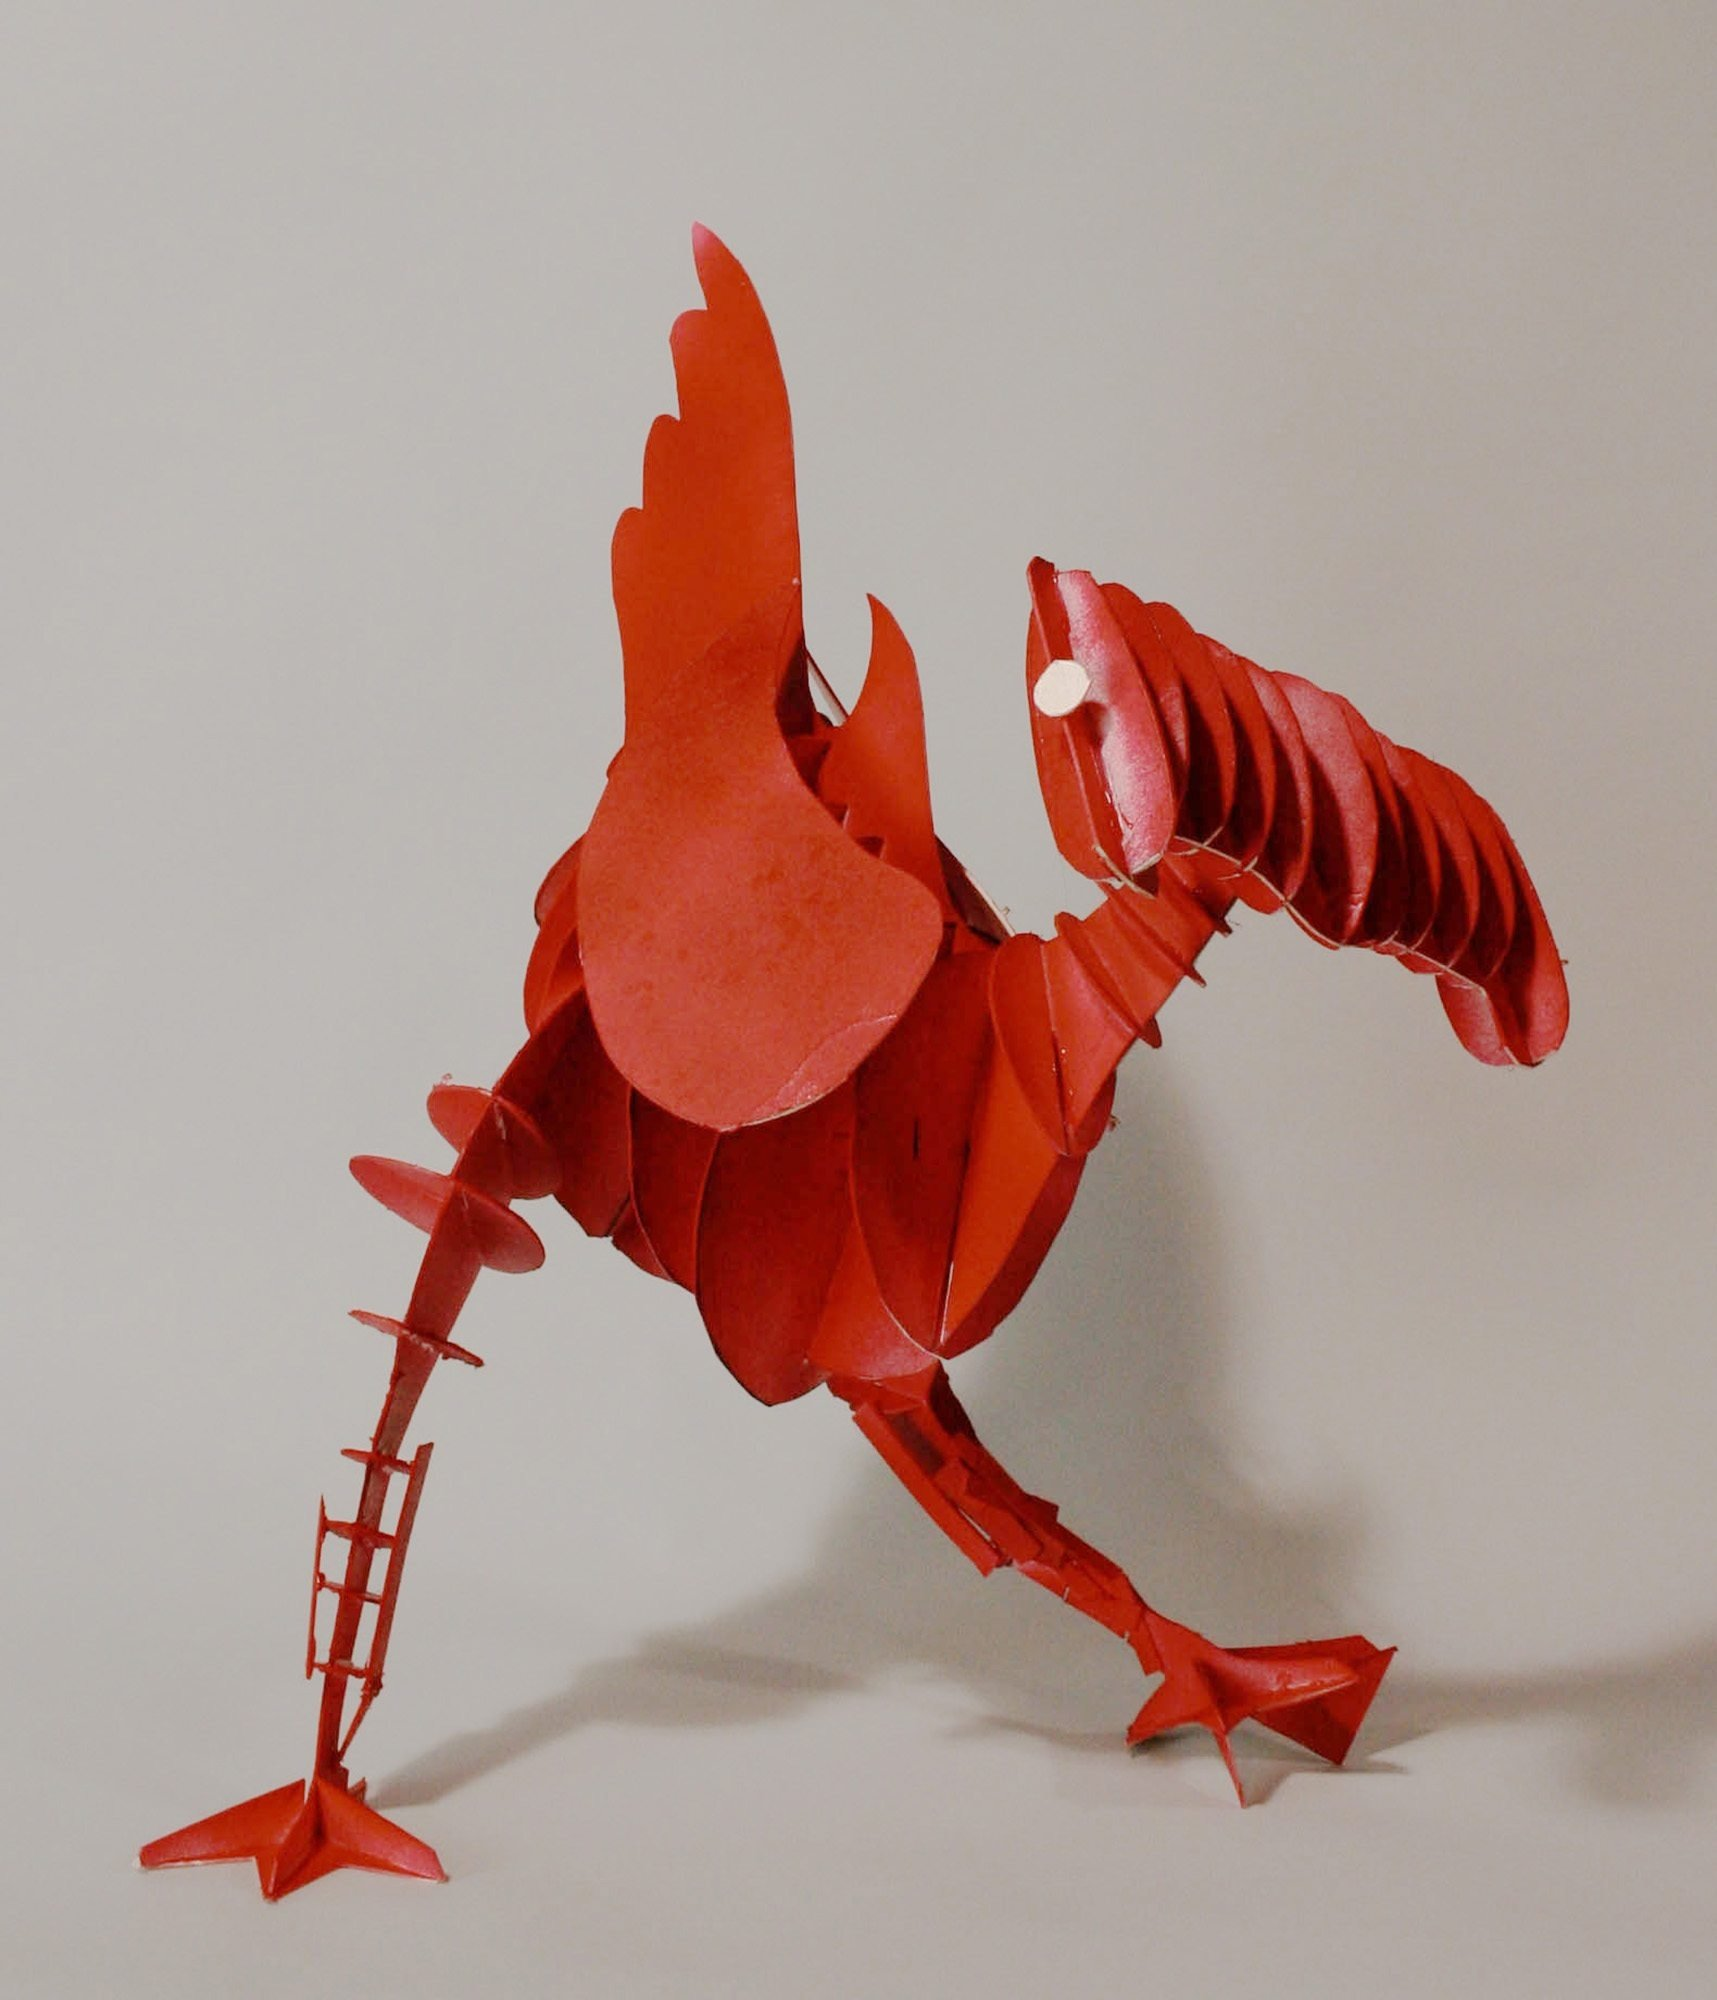 Red rooster made of Taskboard cardboard